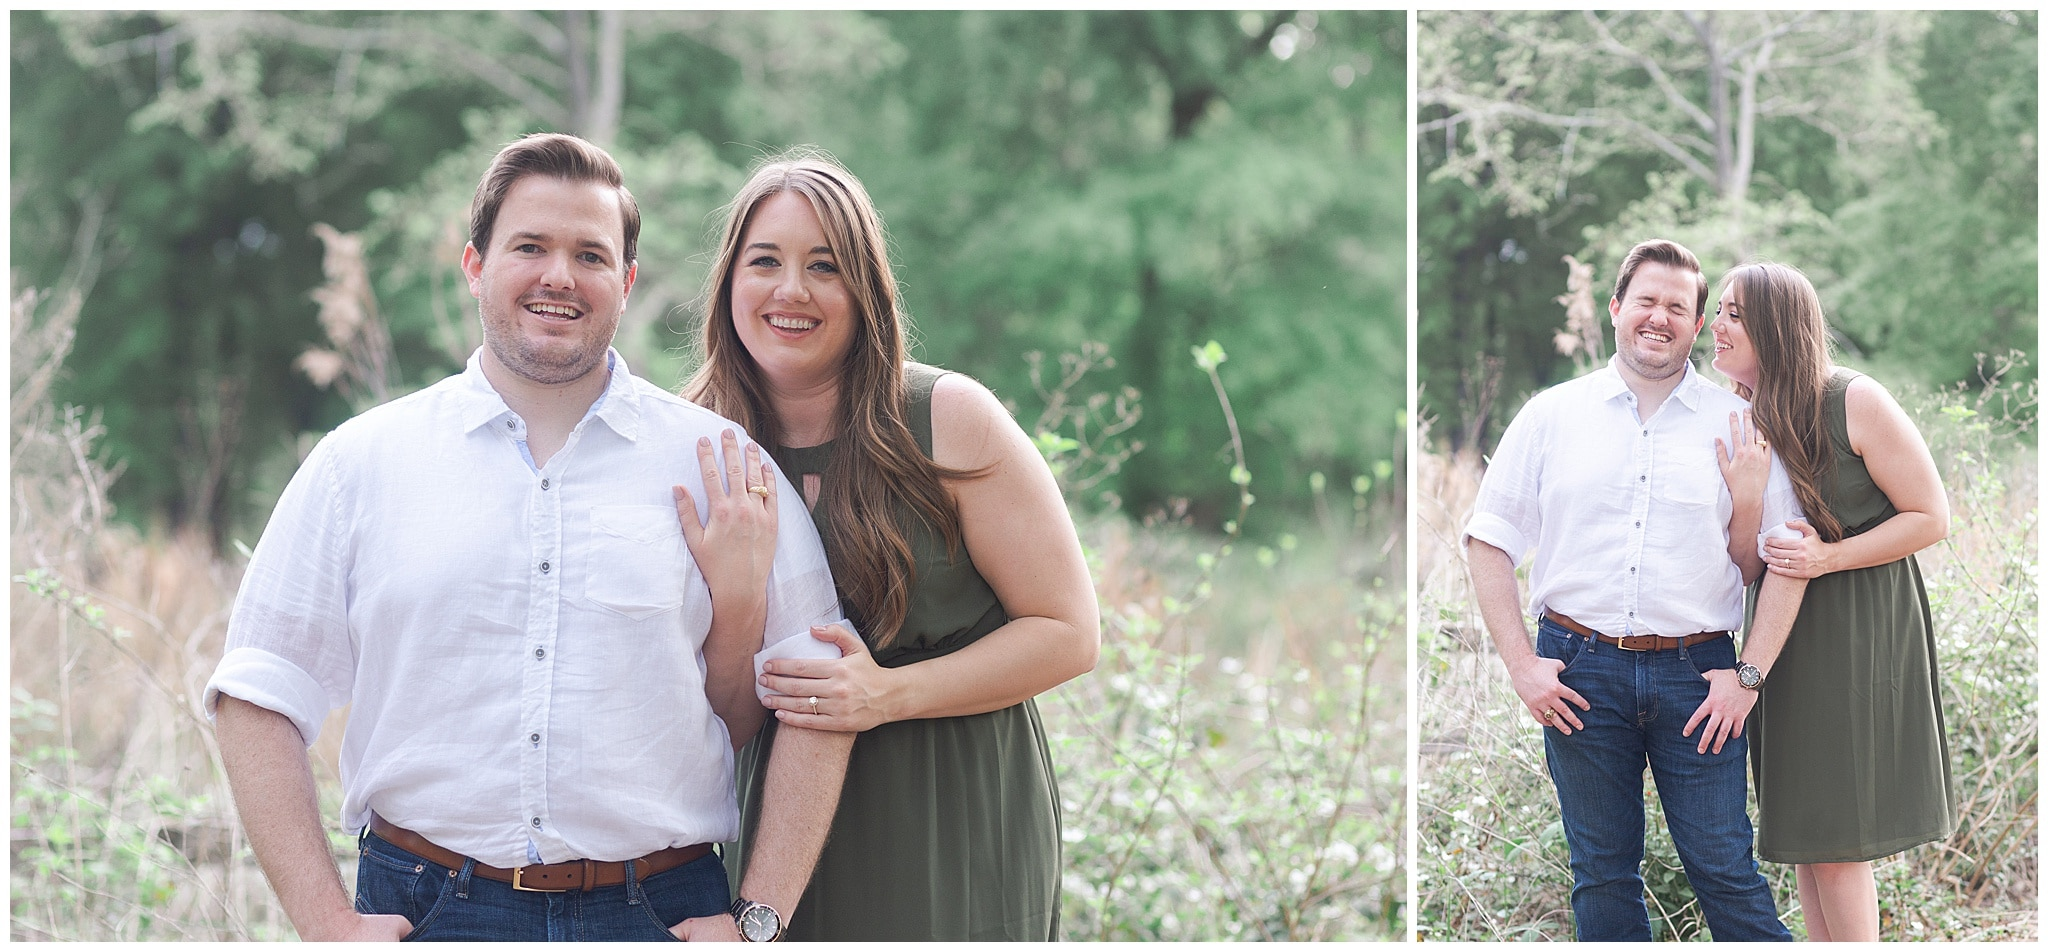 couple laughing in Houston Arboretum and Nature Center during their engagement session by Swish and Click Photography